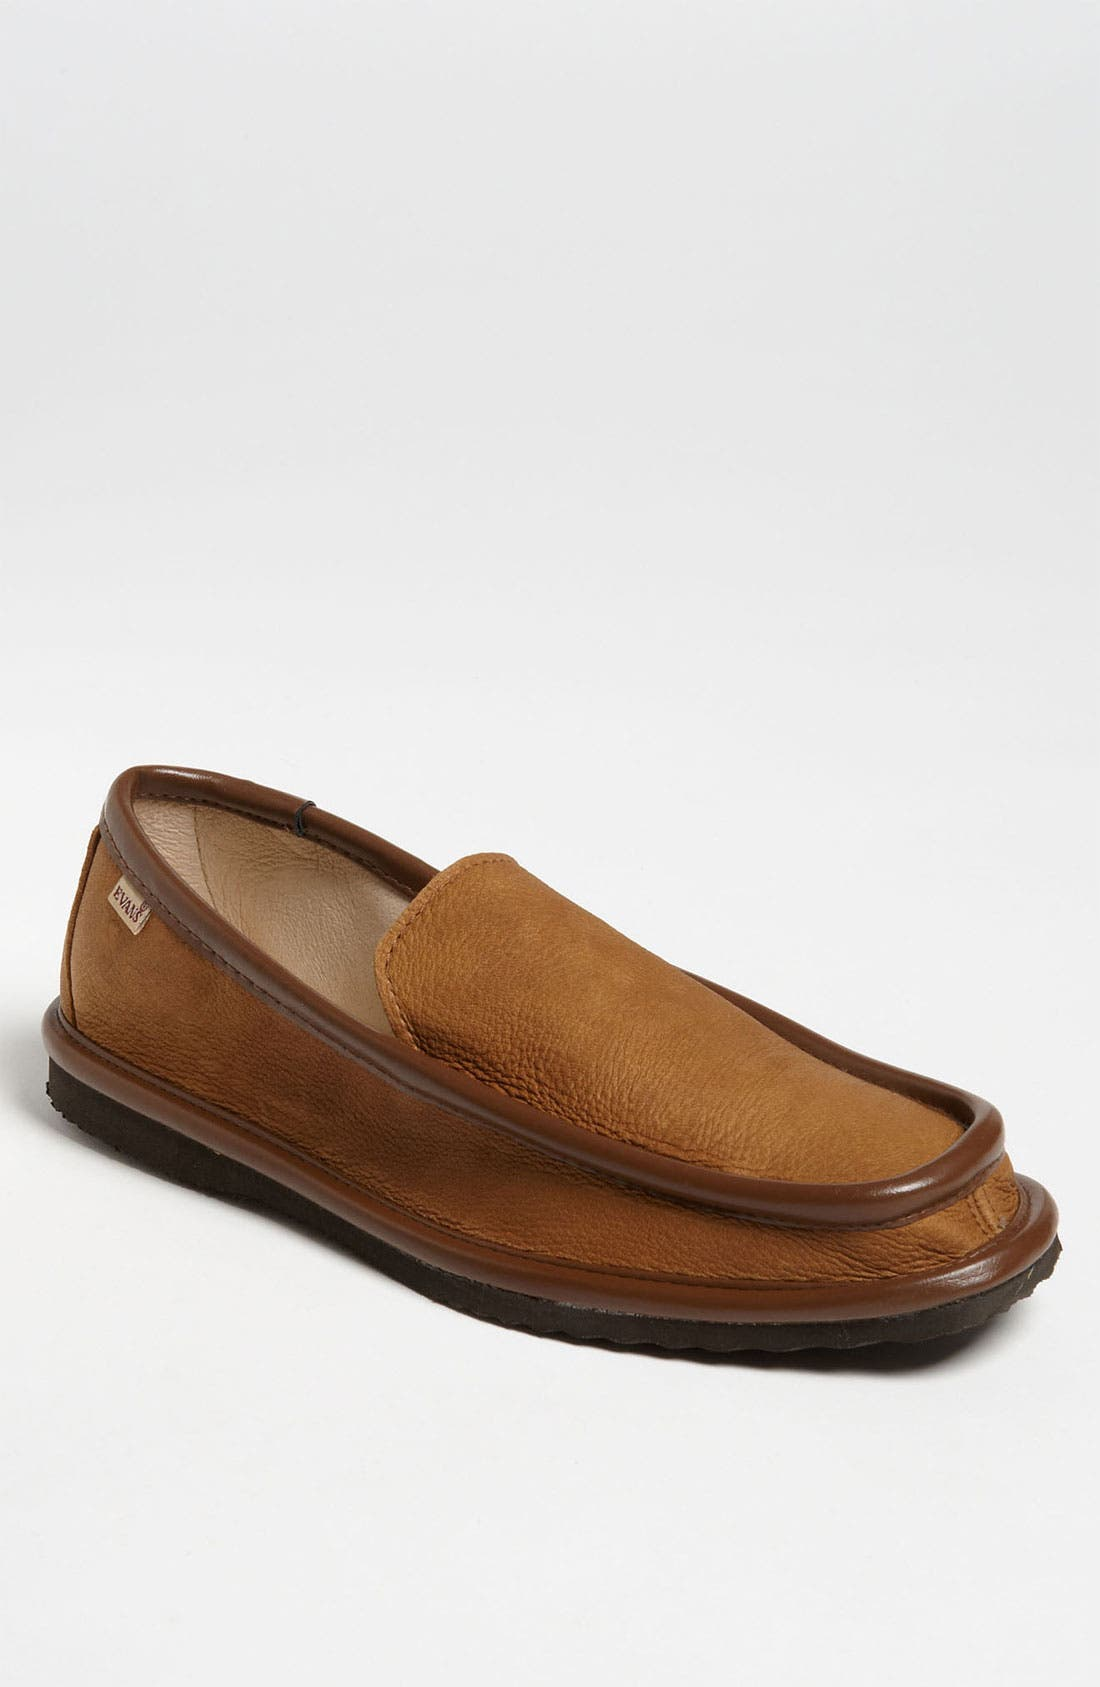 Main Image - L.B. Evans 'Deerking' Slipper (Online Only)